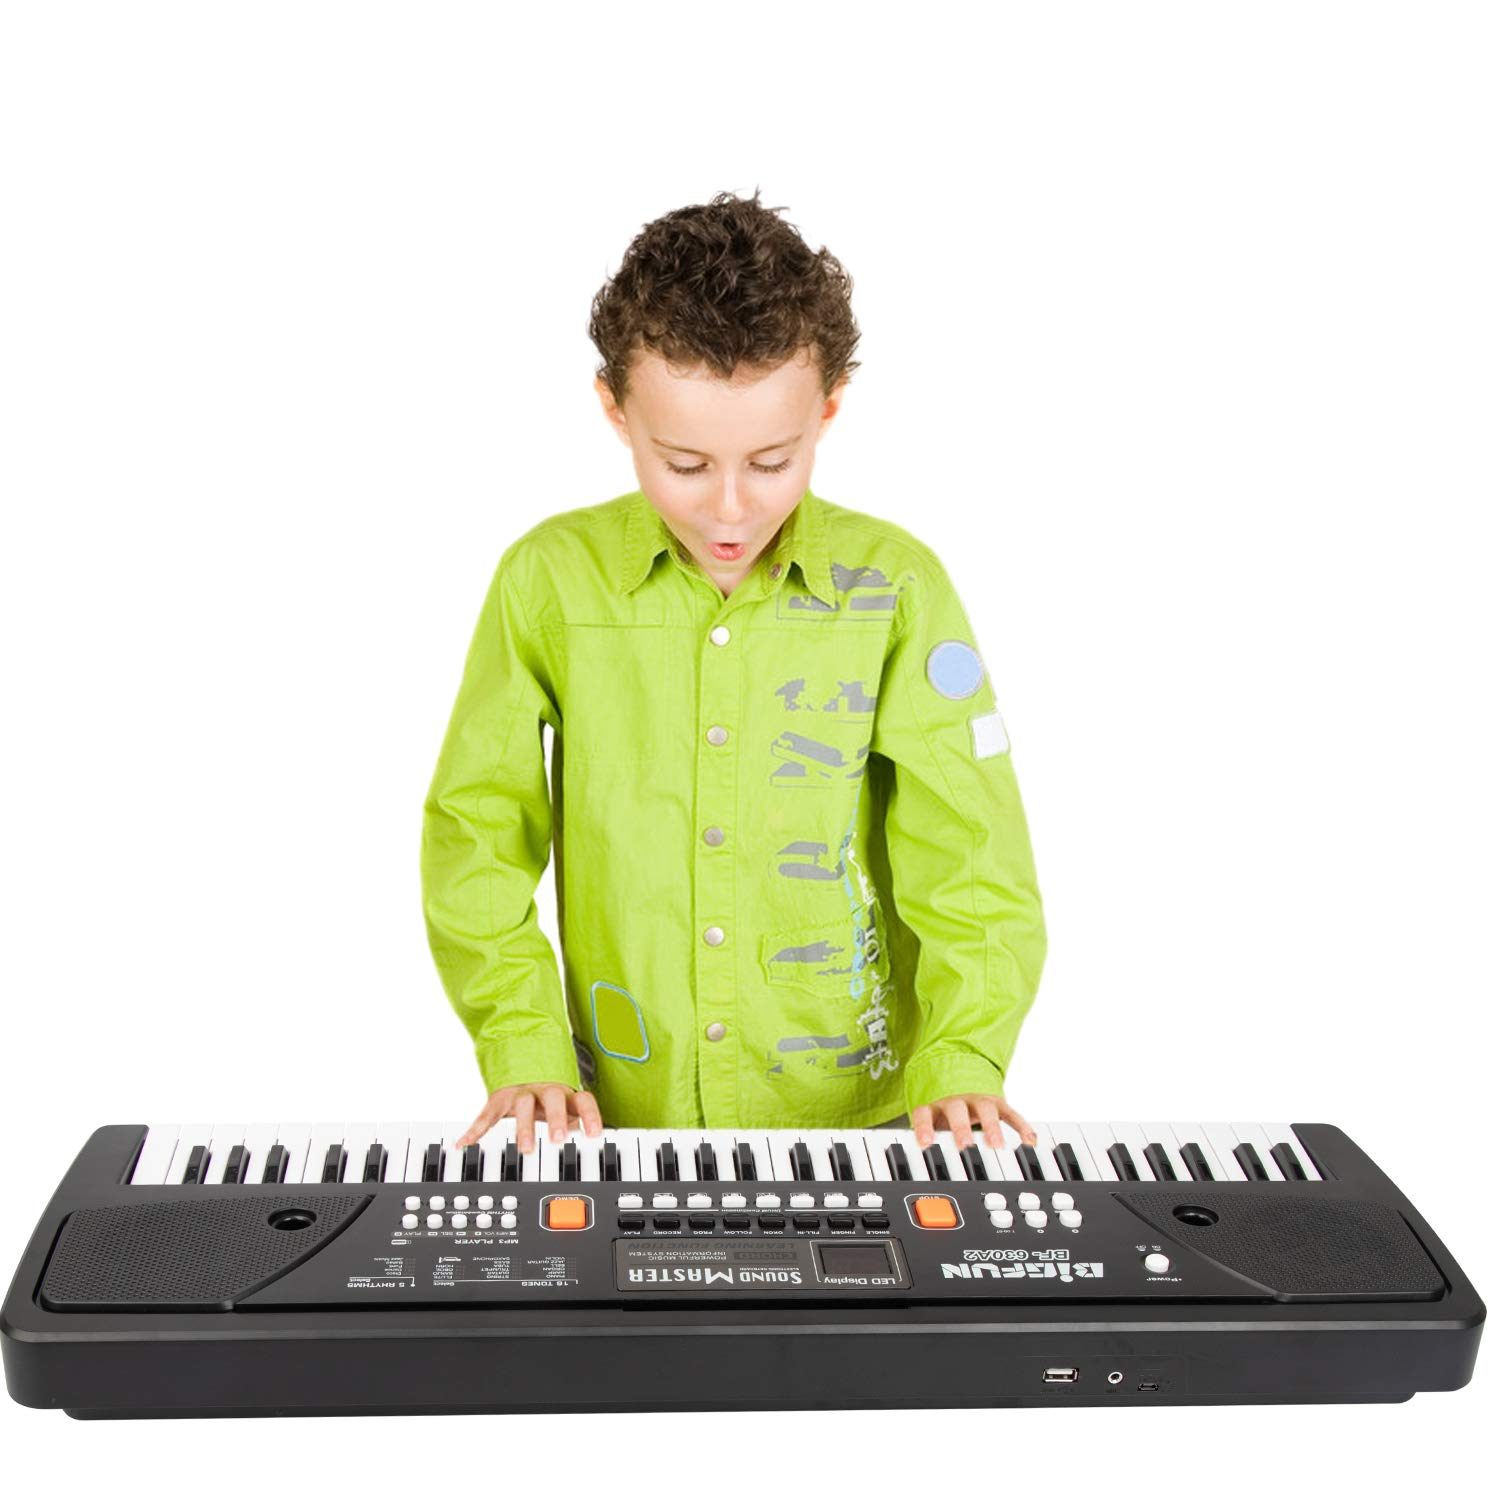 Digital Music Keyboard Piano, JINRUCHE 61 Keys Kids Piano Portable Electronic Keyboard Musical Instrument Multifunction Early Learning Educational Toy by JINRUCHE (Image #7)